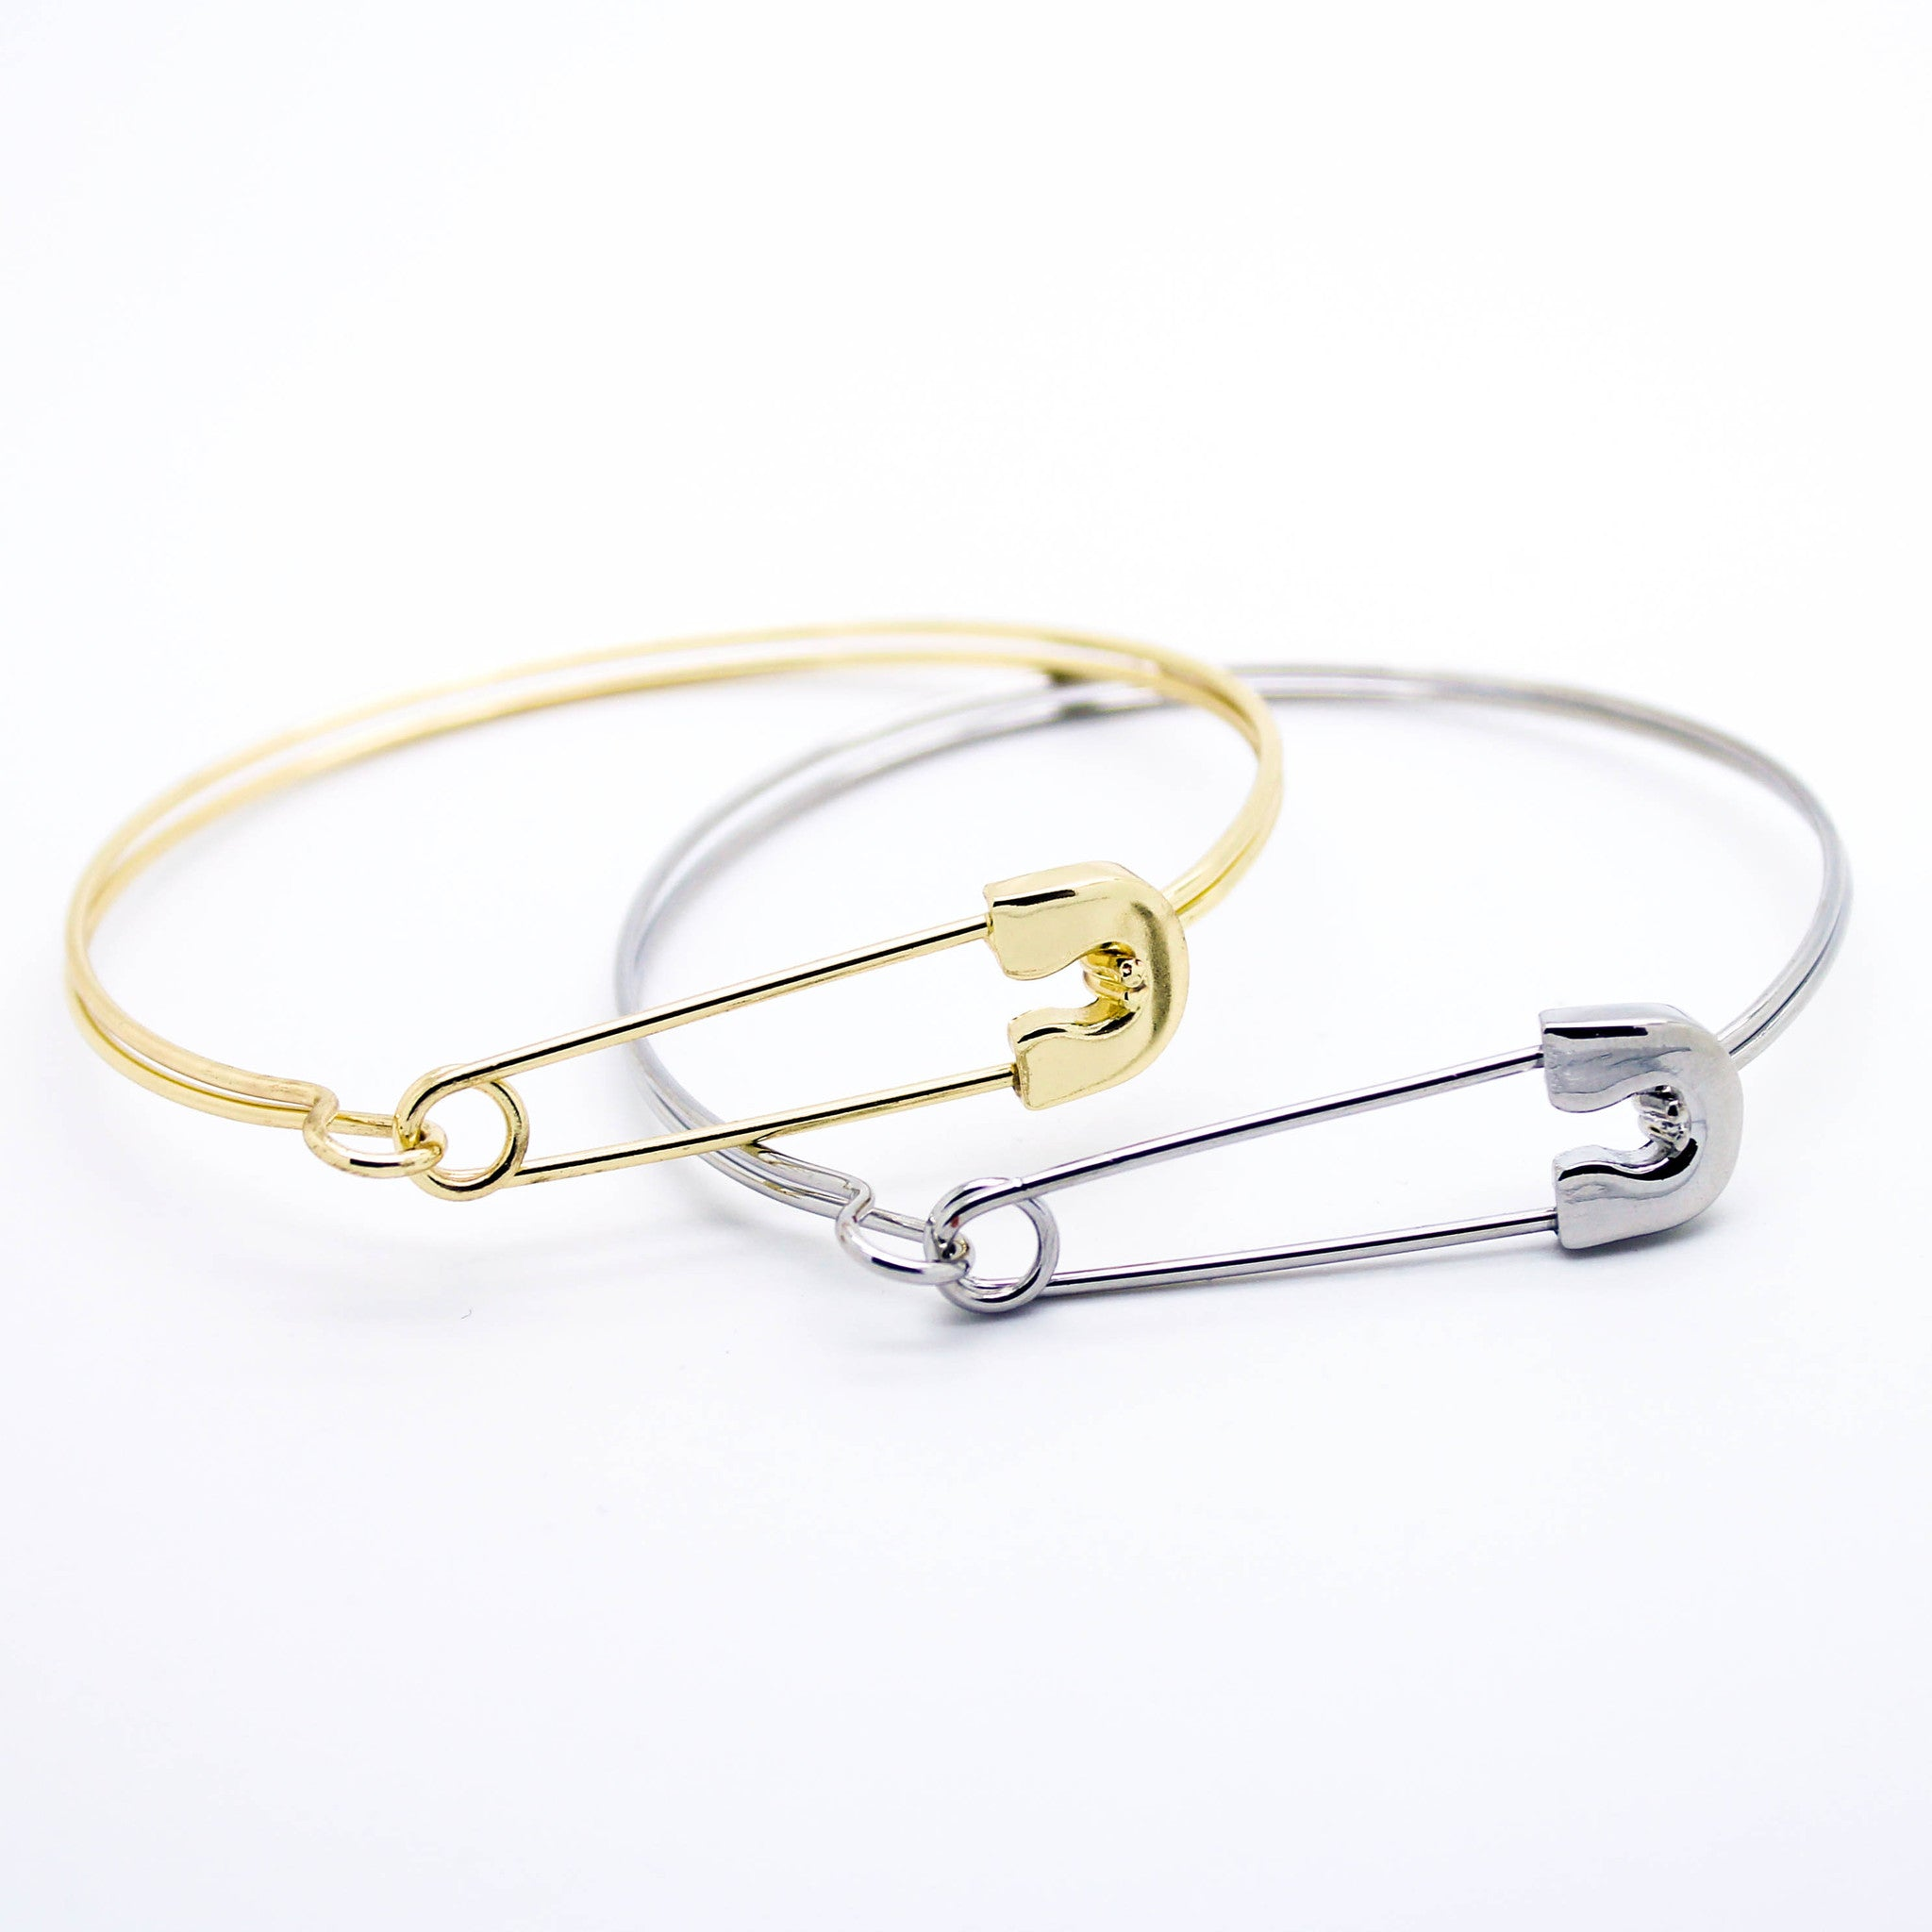 in silver sterling jewelry love matching products kurumidori adjustable bracelet knot gold bangles bangle